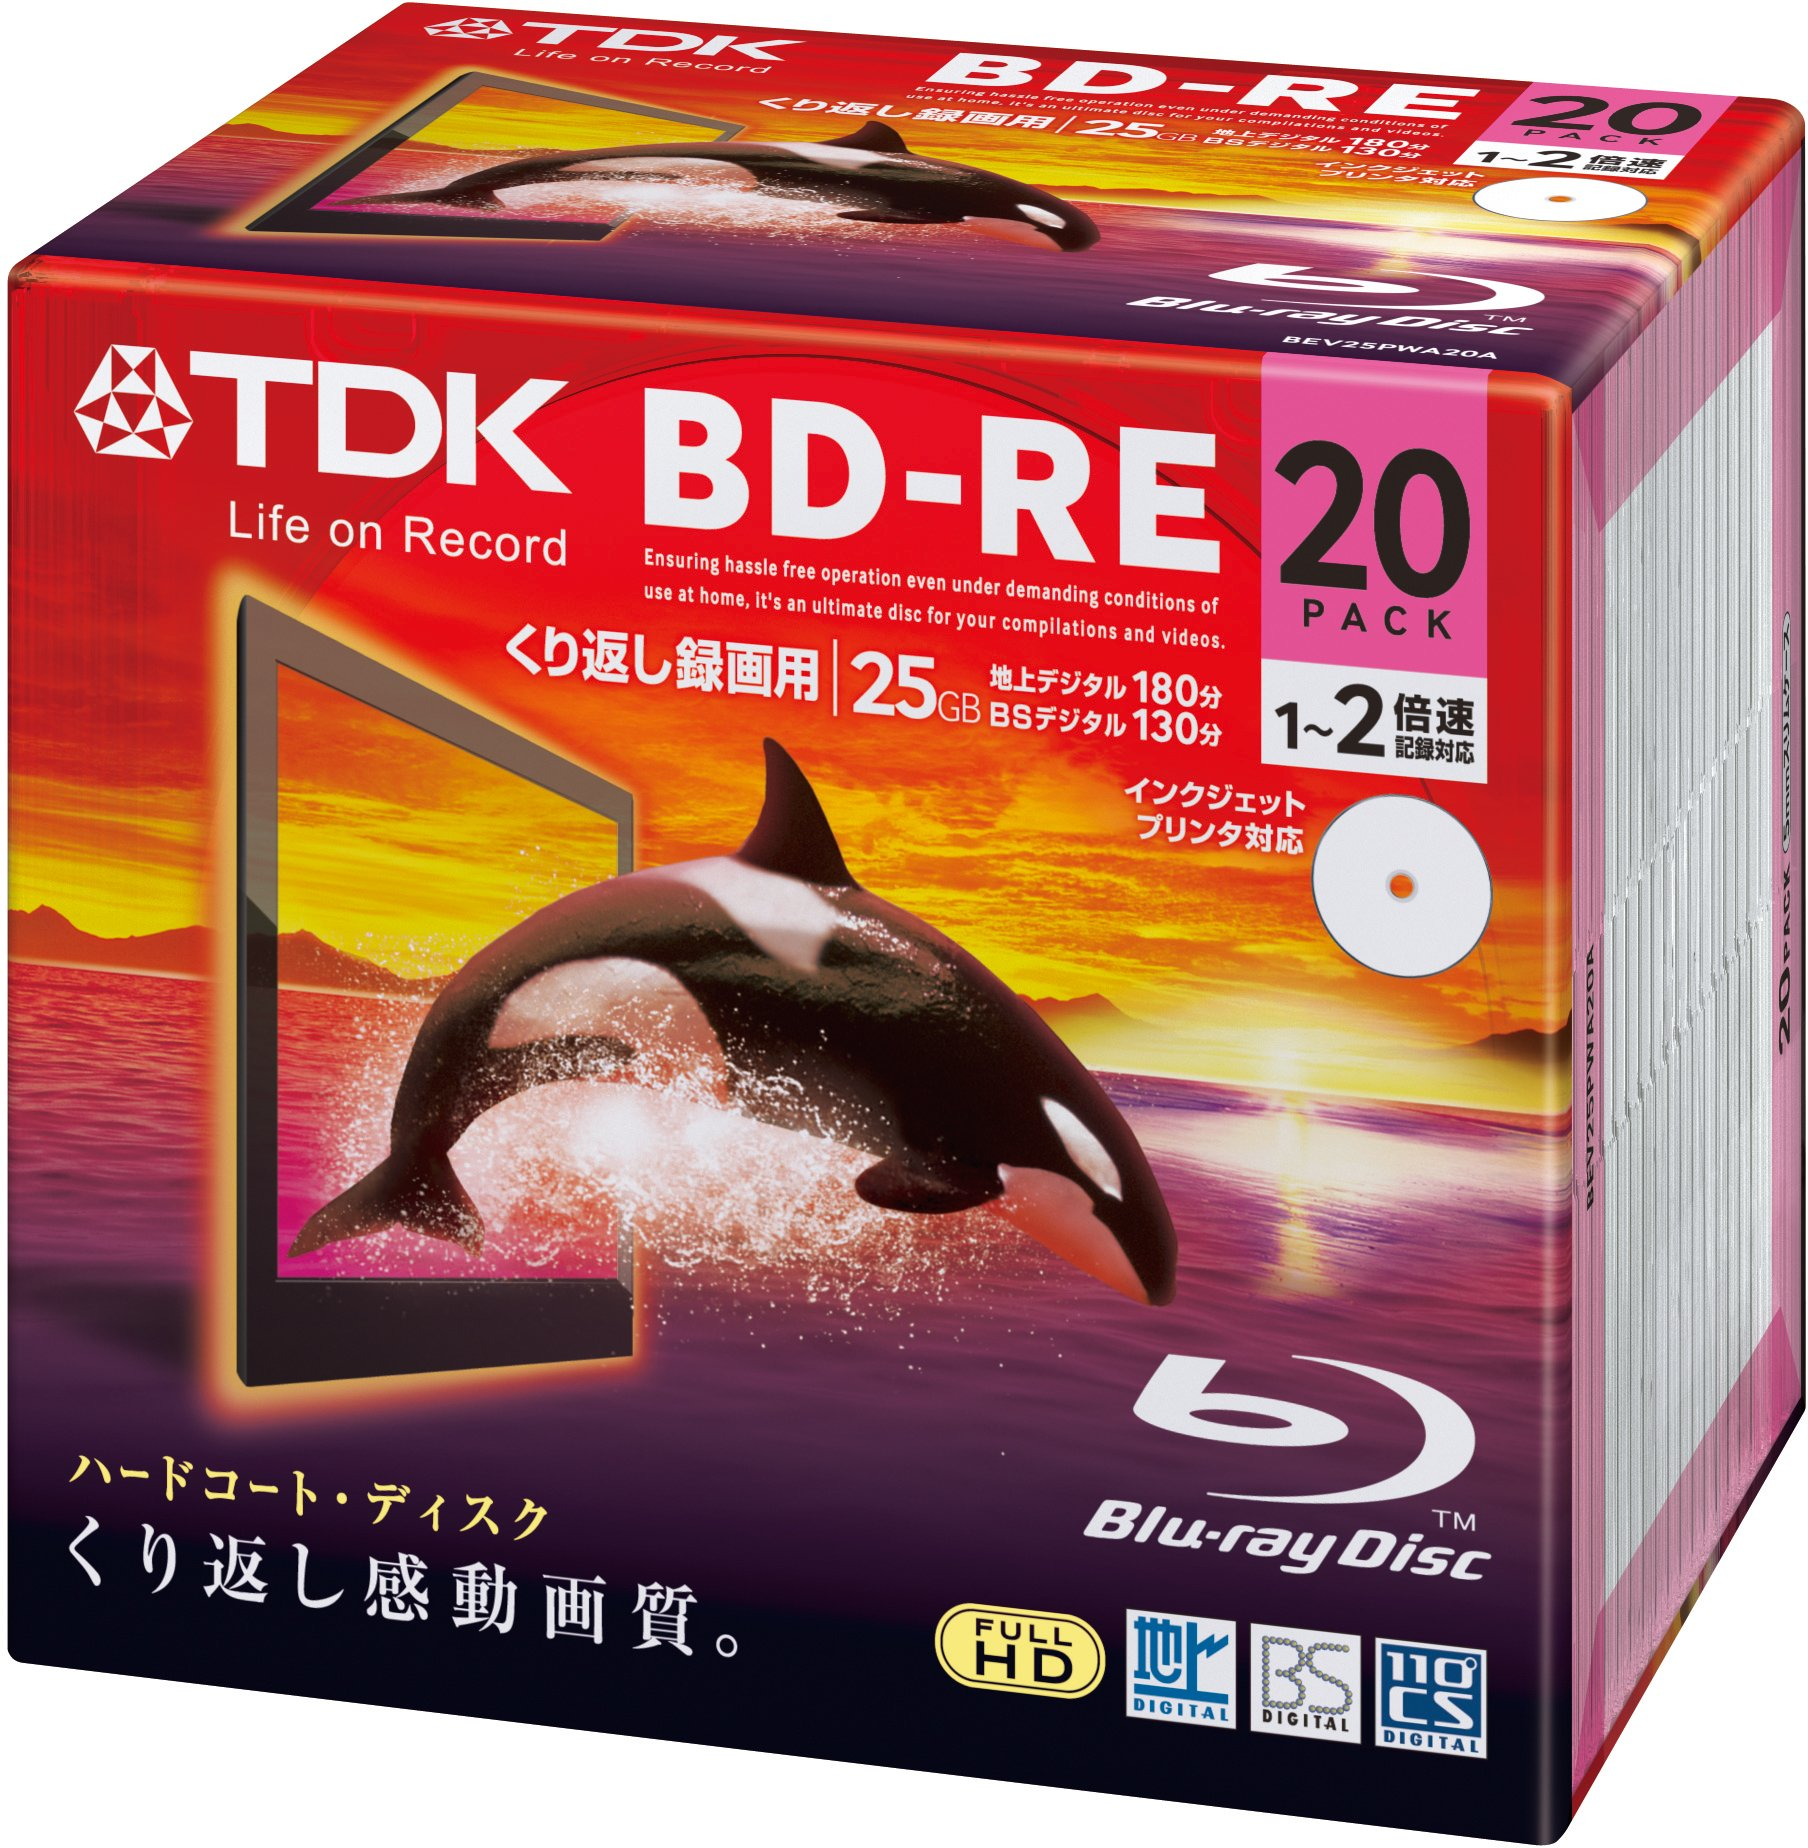 TDK Bluray Disc 25 gb BD-RE rewritable 2x Speed White Printable HD discs 20 pack in Jewel cases by TDK